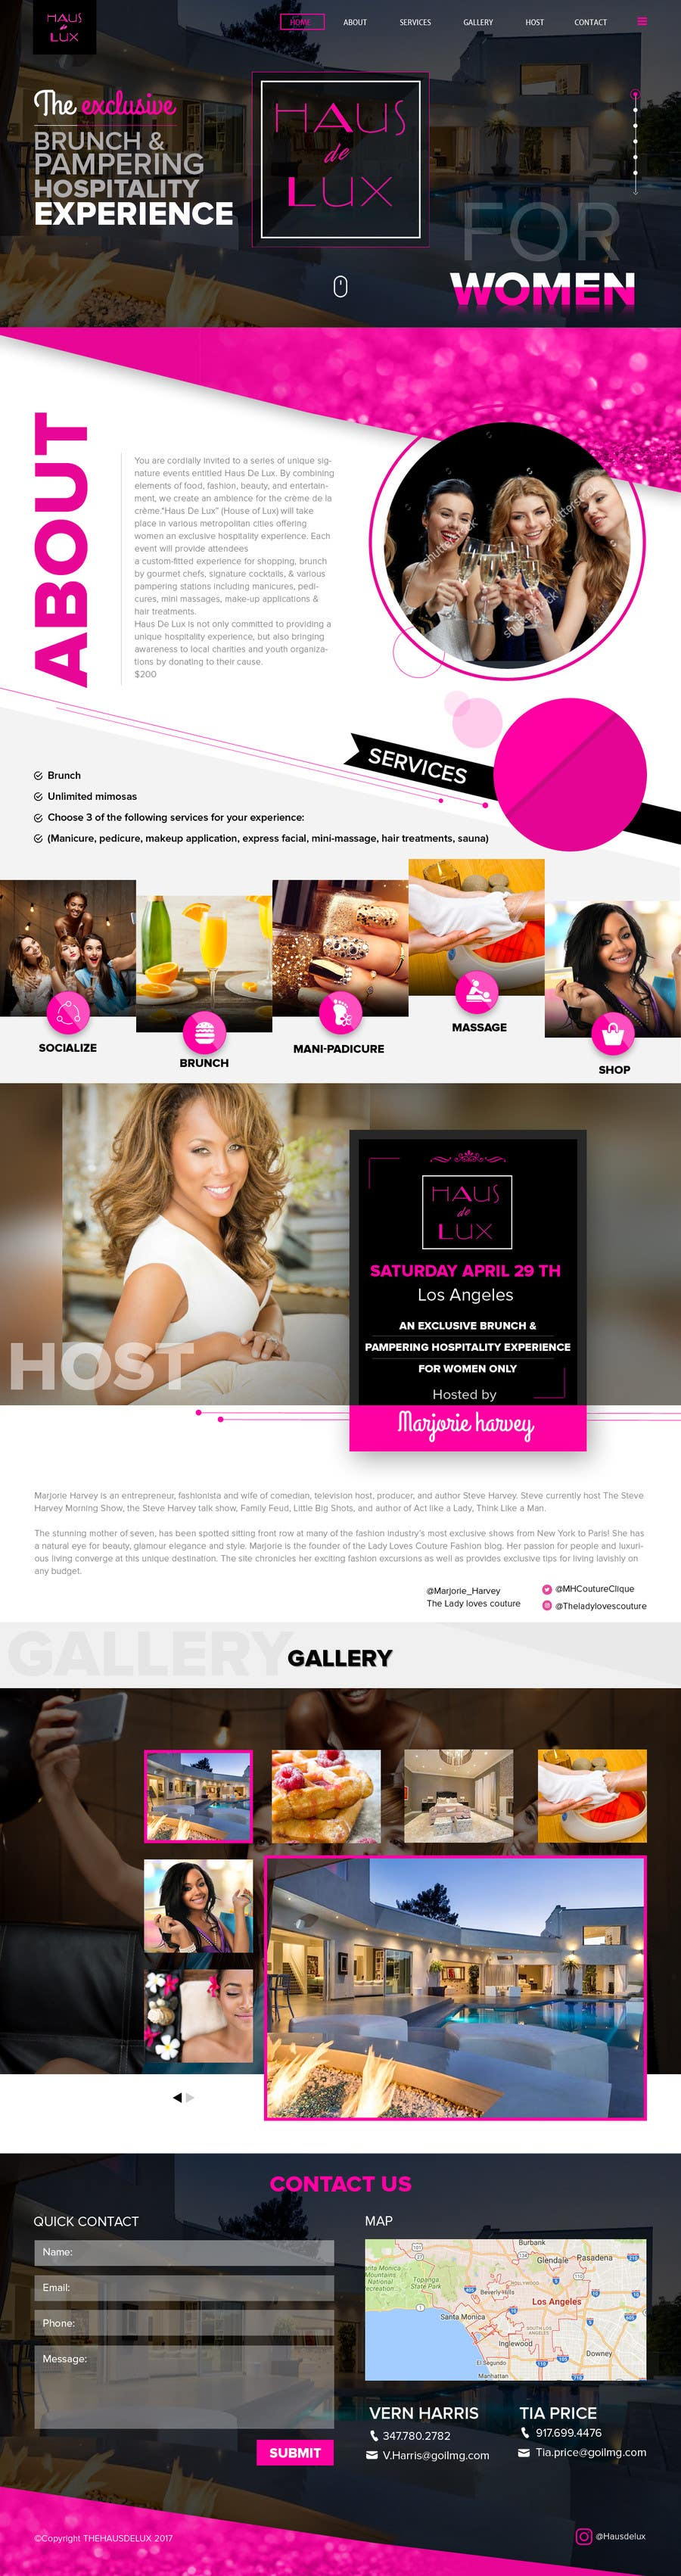 Proposition n°8 du concours Parallax web design for women brunch & pampering experience.